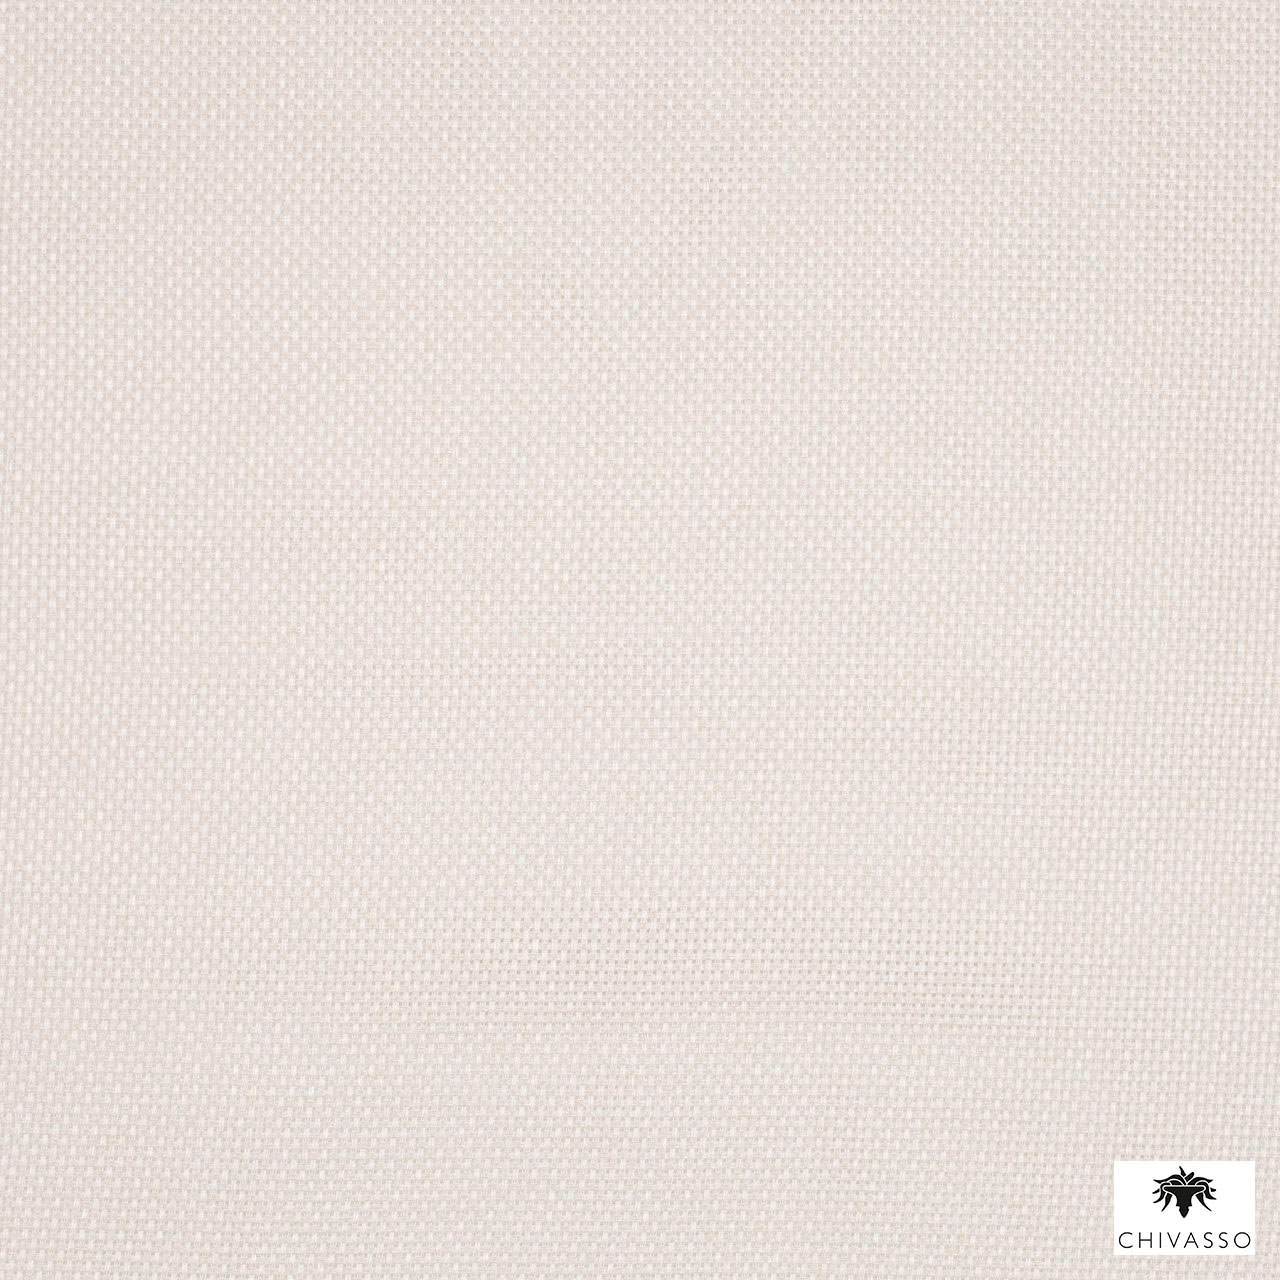 Chivasso - Twinkle - Ch2740-070  | Curtain Fabric - Beige, Plain, Synthetic, Domestic Use, Railroaded, Wide Width